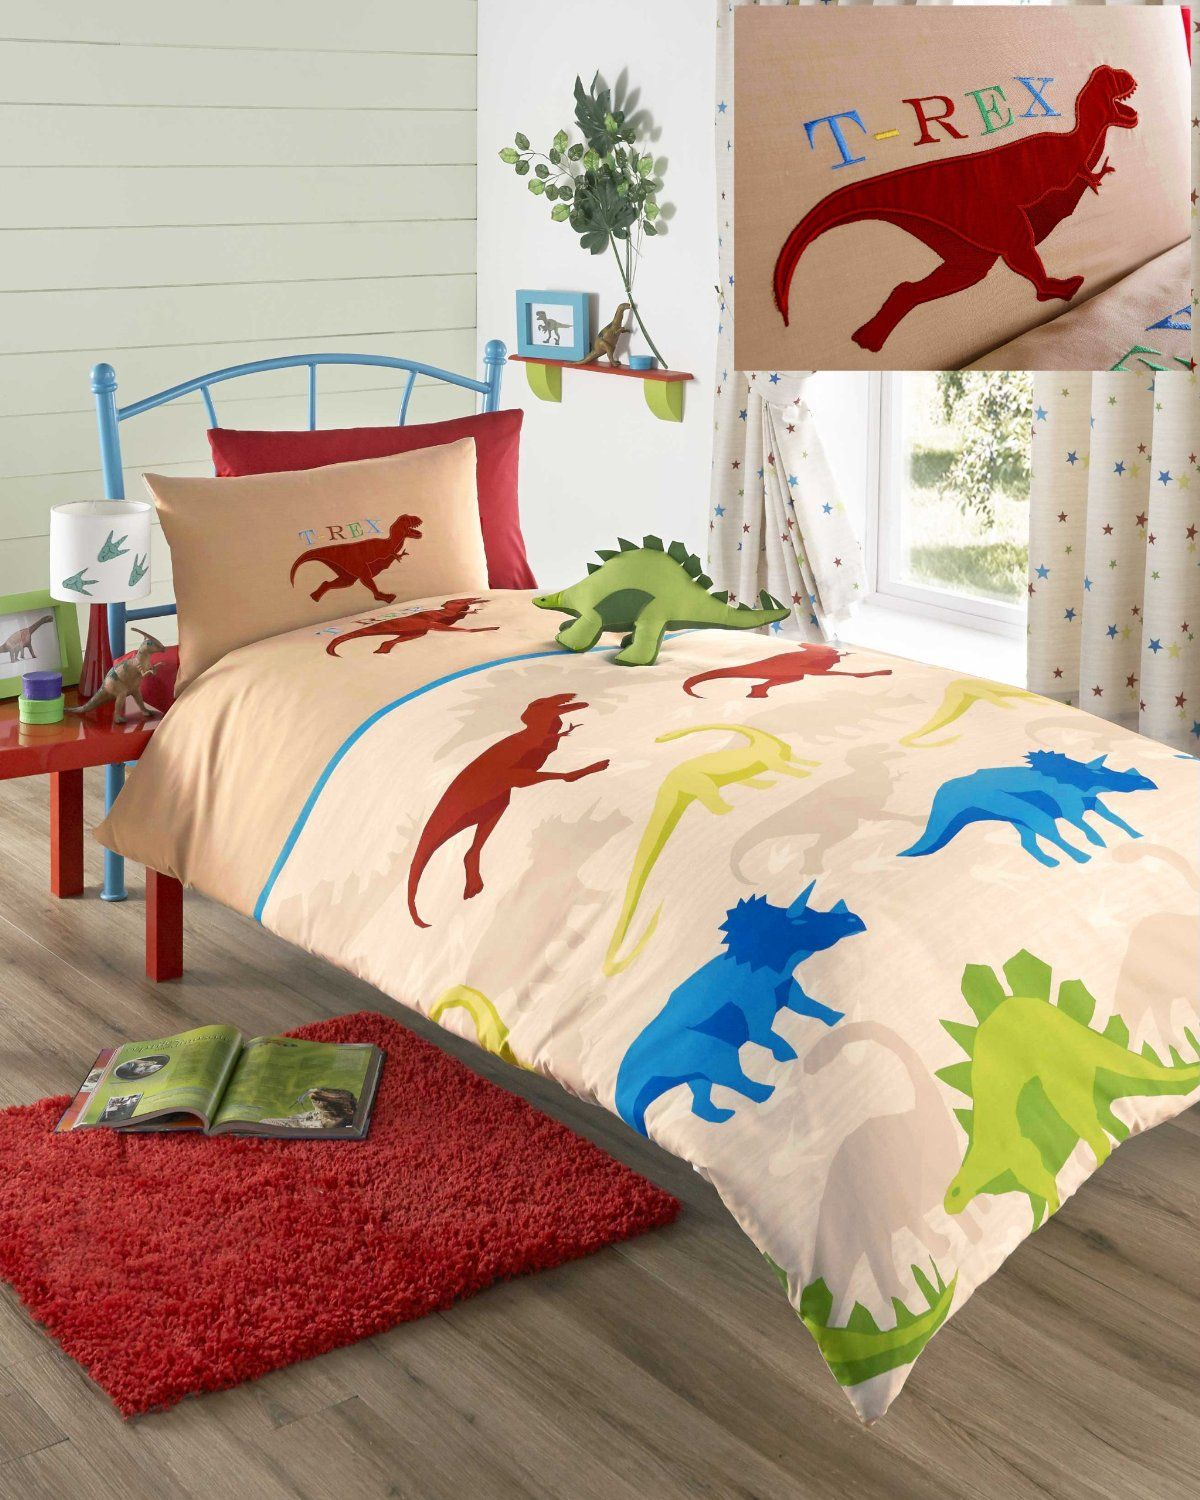 Boys Double Quilt Cover Beige Embroidered Dinosaur Boys Double Duvet Cover Bed Set Kids